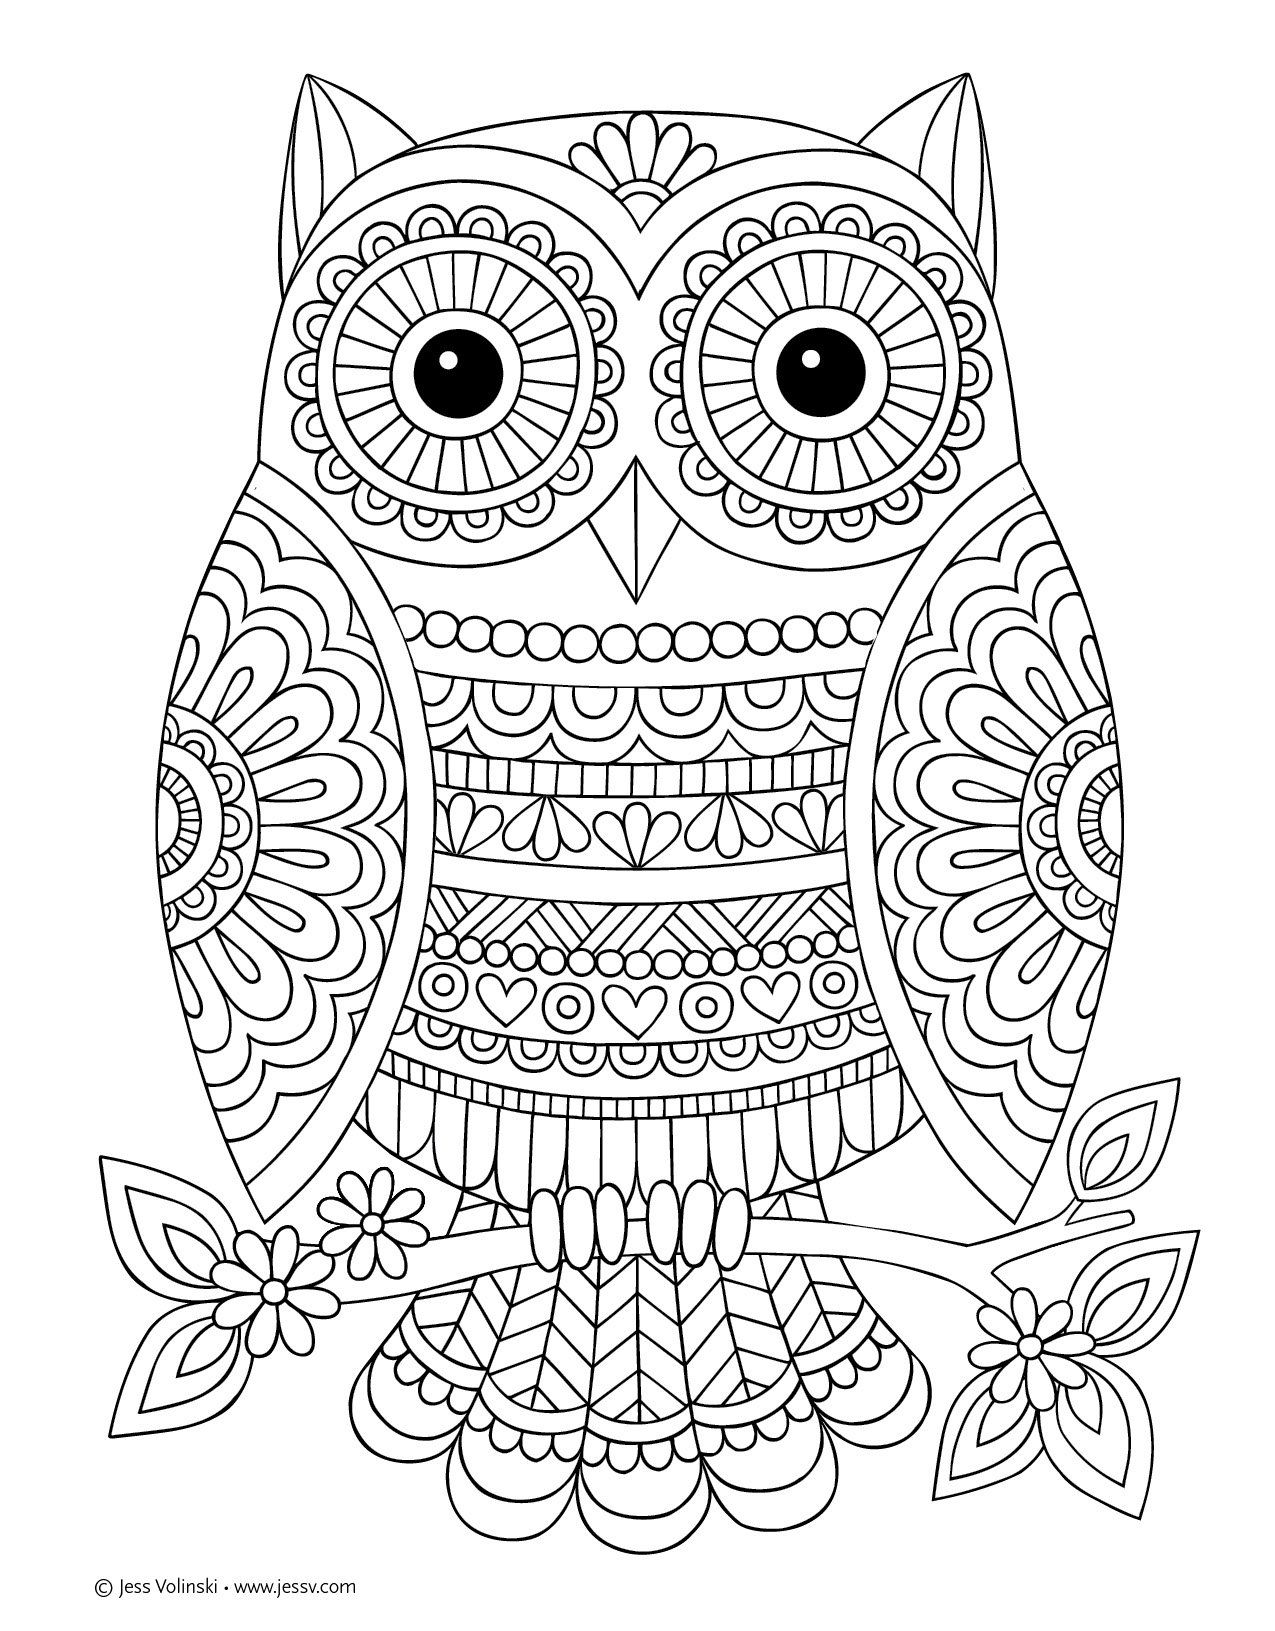 Robot Check Owl Coloring Pages Mandala Coloring Pages Mandala Coloring